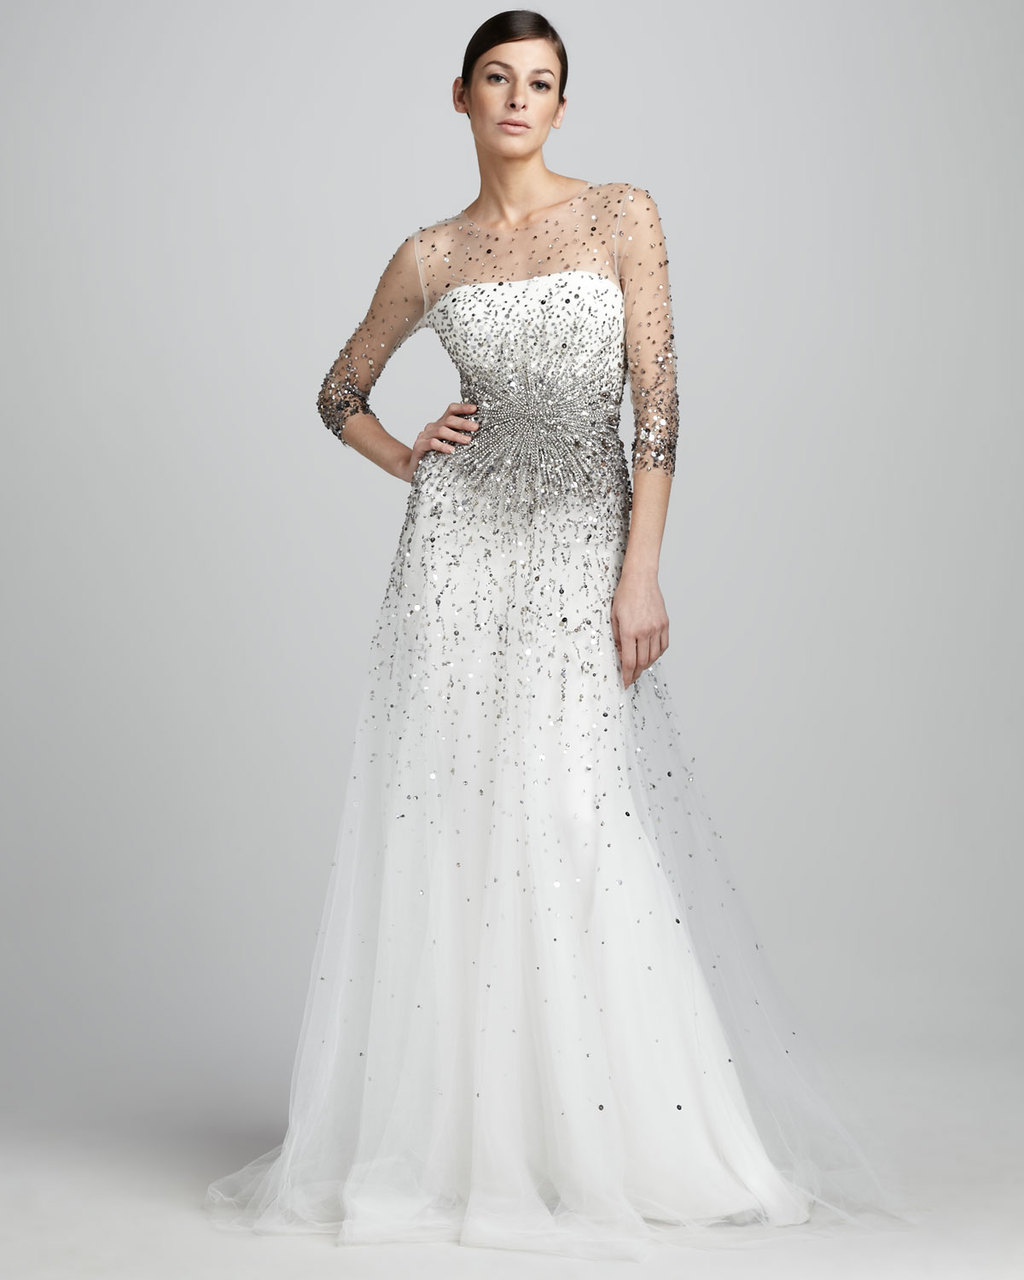 0fb5c4d0 wedding splurge top 10 for fall 2012 Marchesa bridal gown